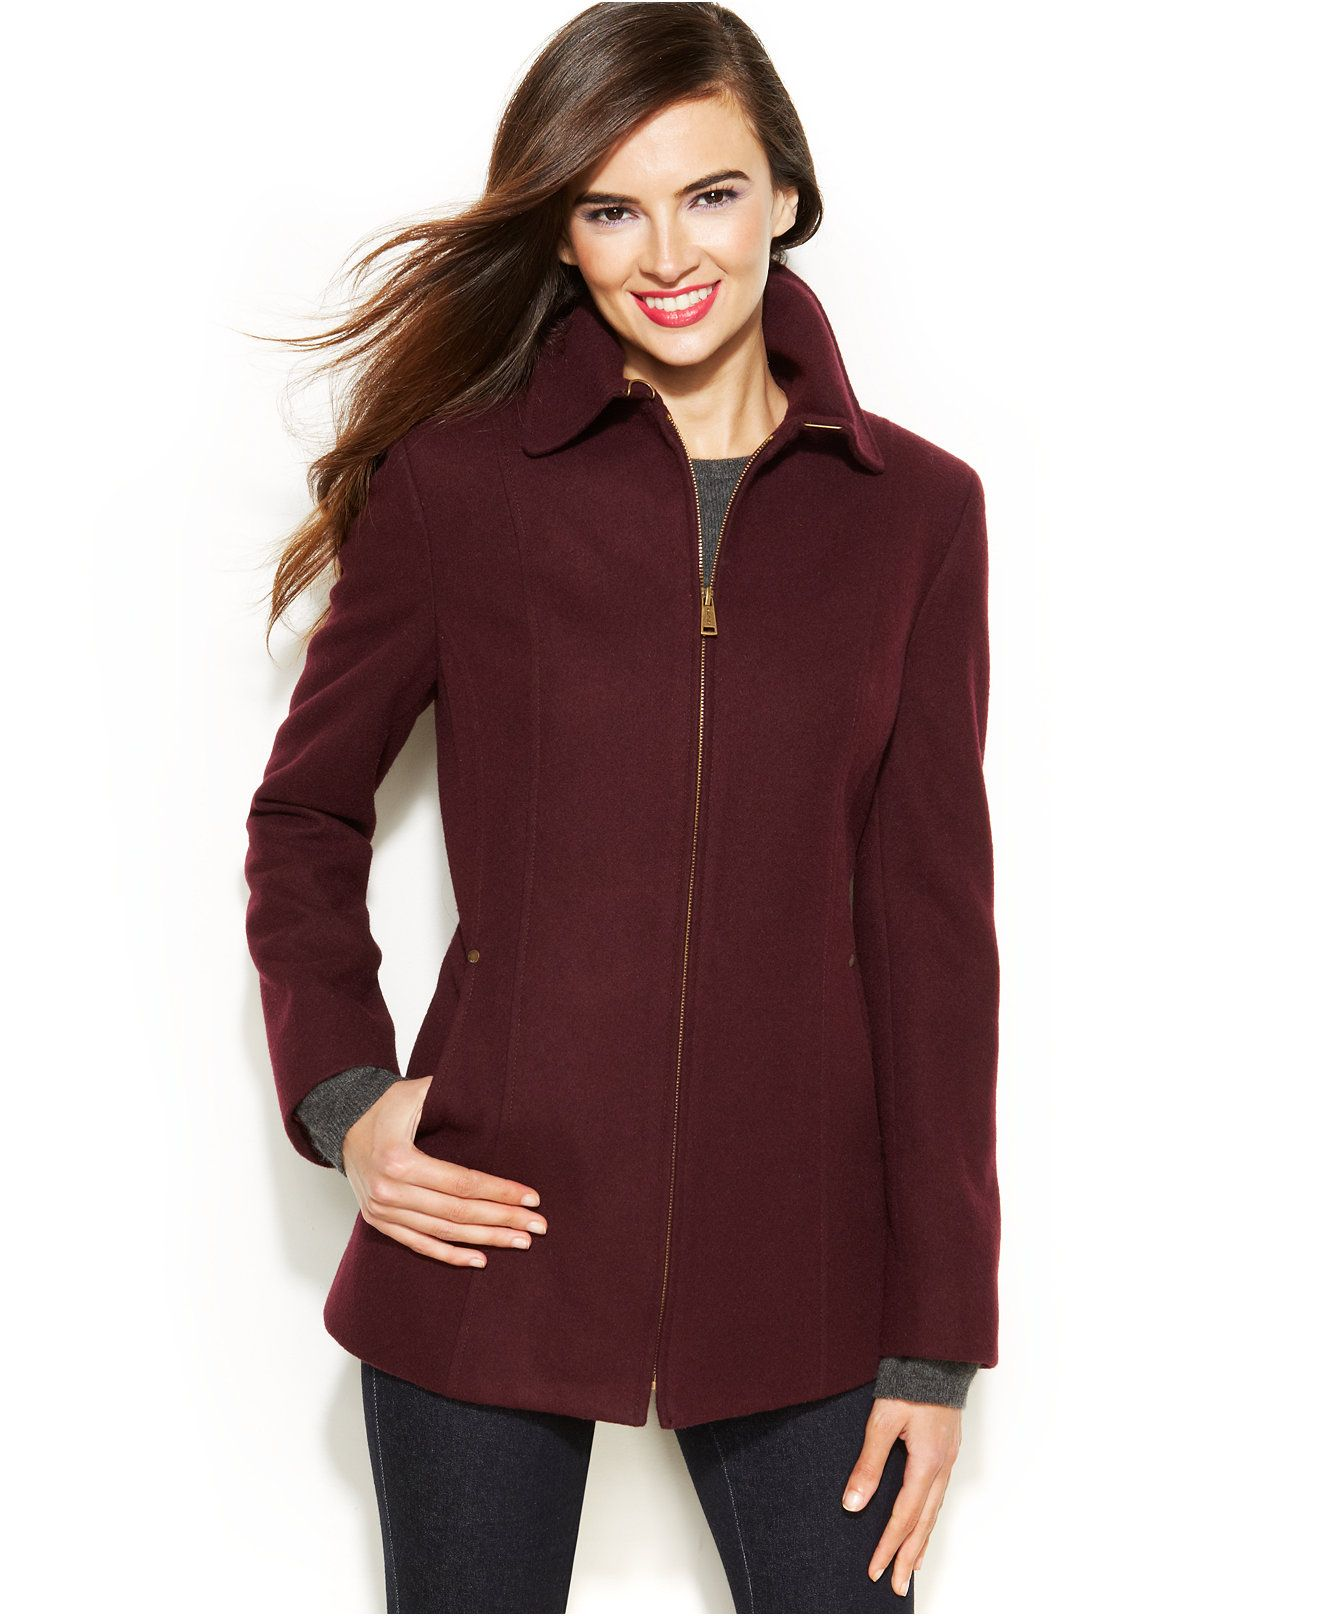 Nautica Zip-Front Wool-Blend Jacket - Coats - Women - Macy's ...